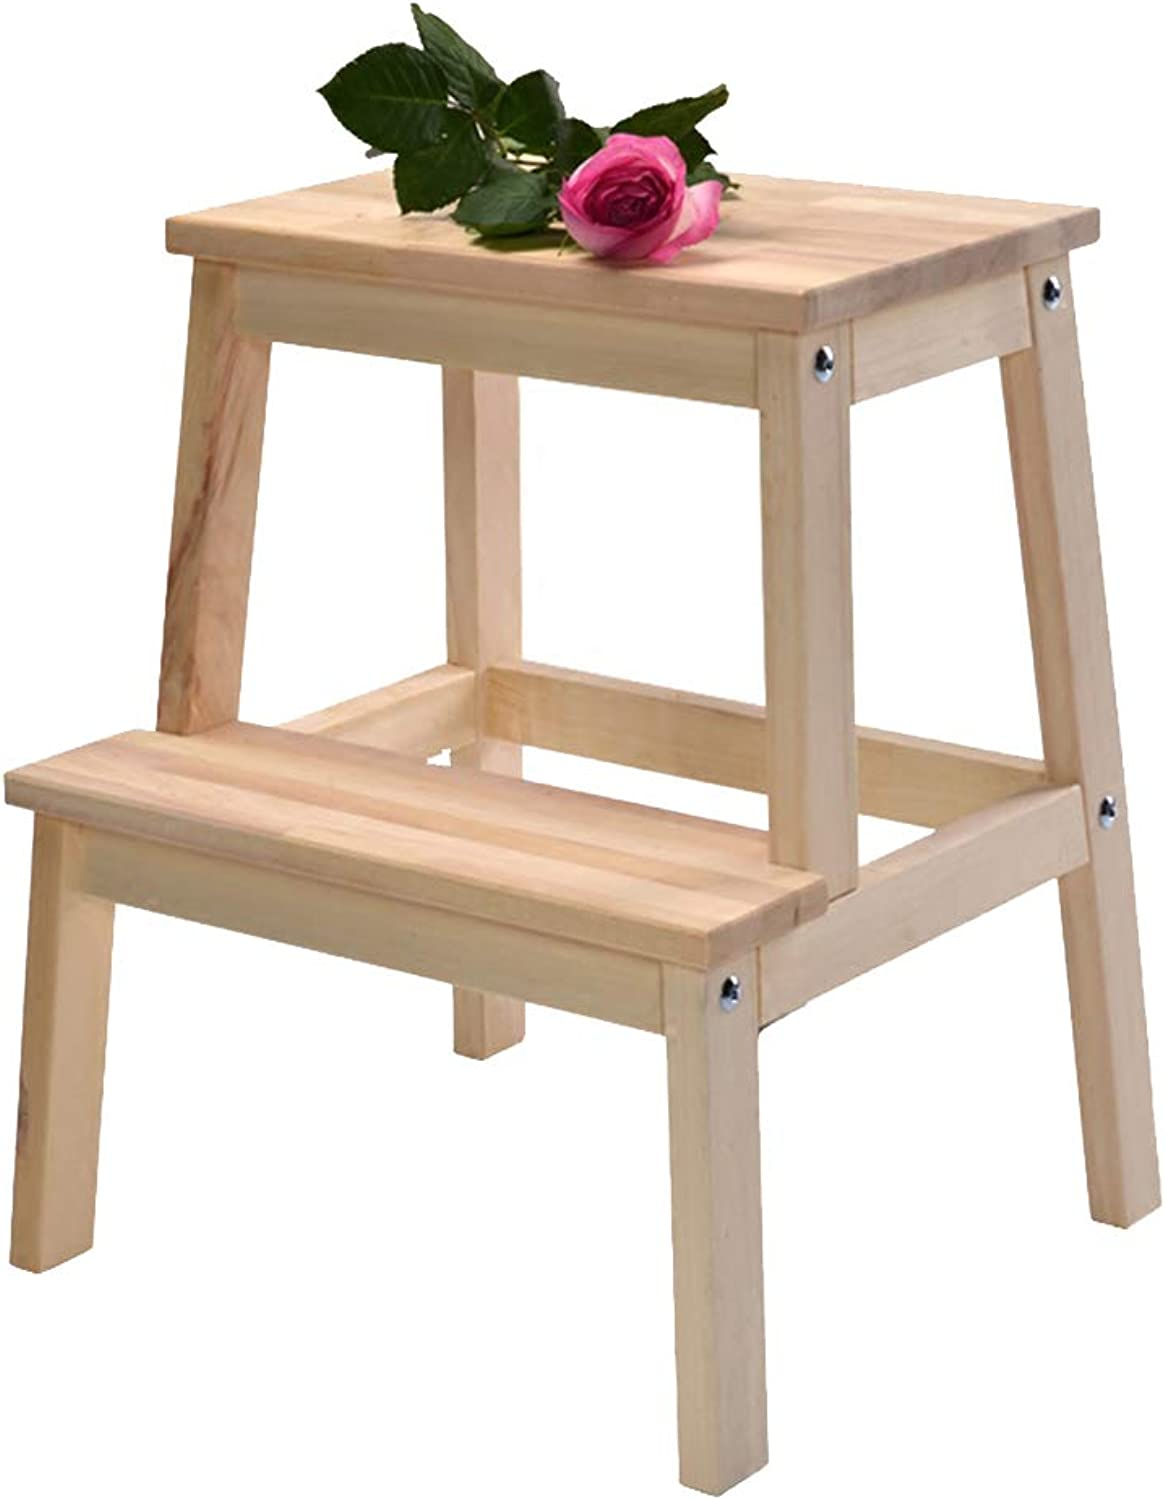 PENGFEI 2-Step Stool Ladder Portable Change shoes Bench Ascend Pedal, 2 colors Furniture (color   Wood color)